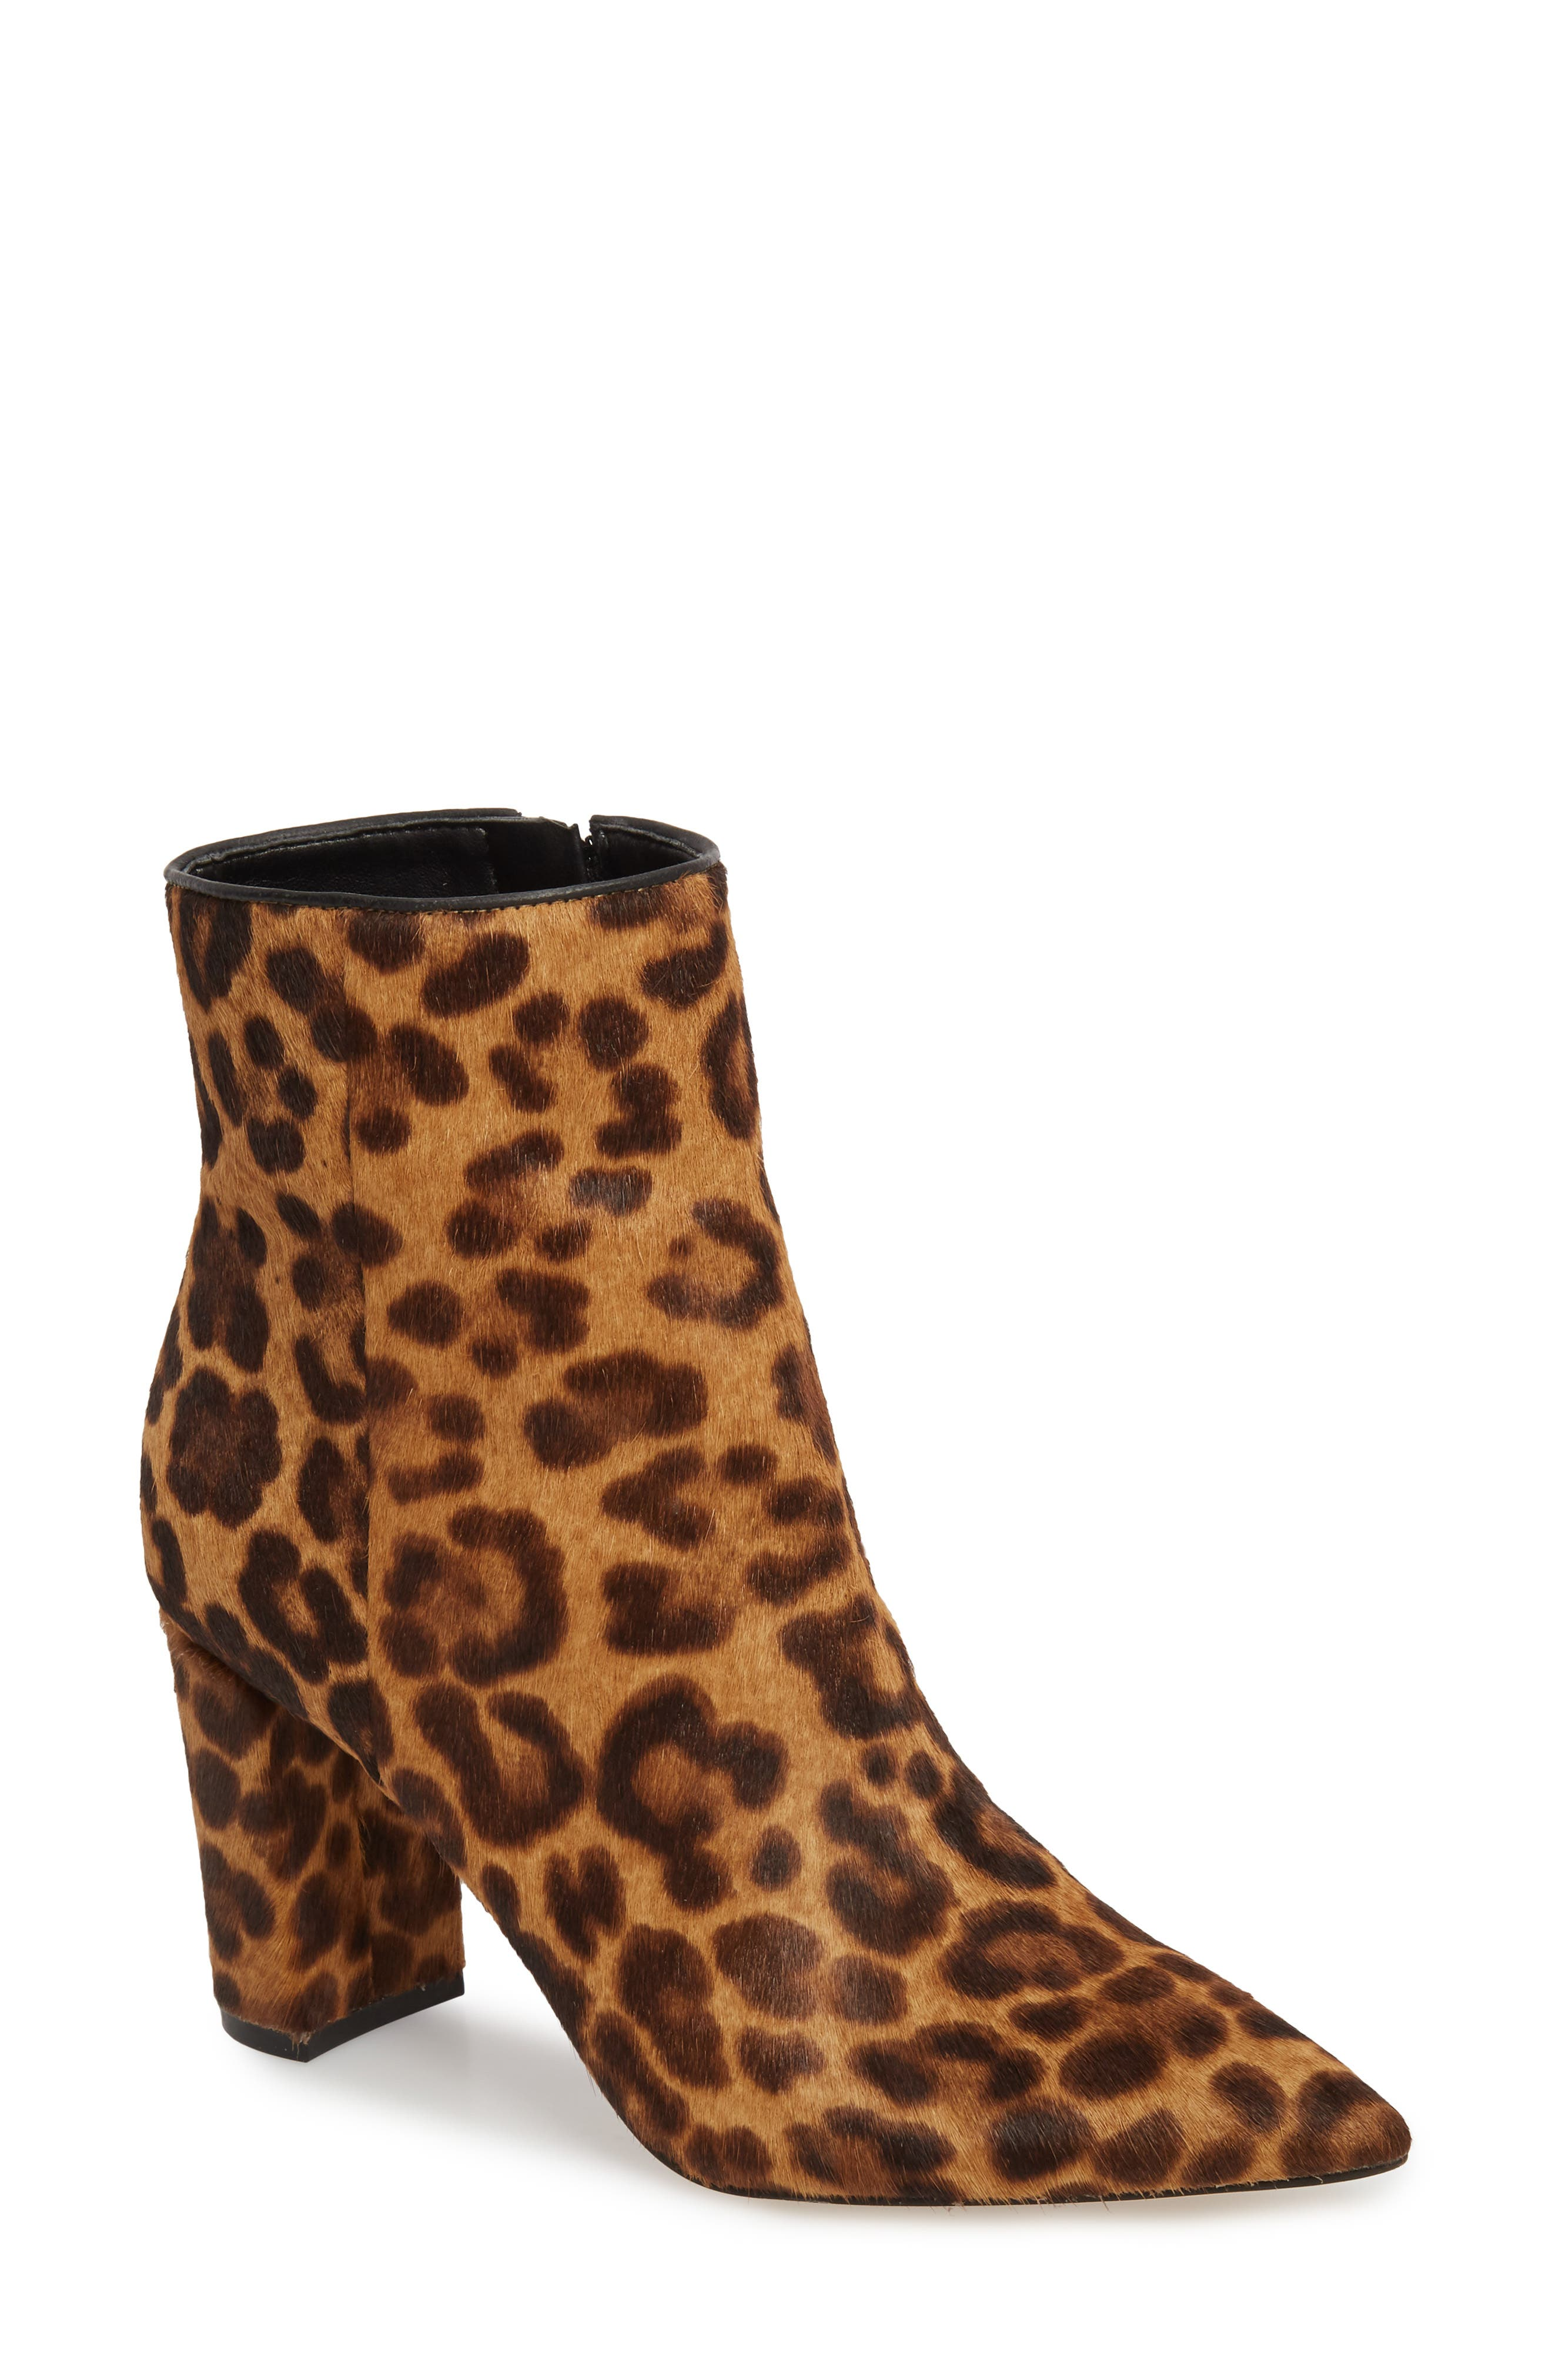 Ulanily Pointy Toe Bootie,                             Main thumbnail 1, color,                             LEOPARD CALF HAIR